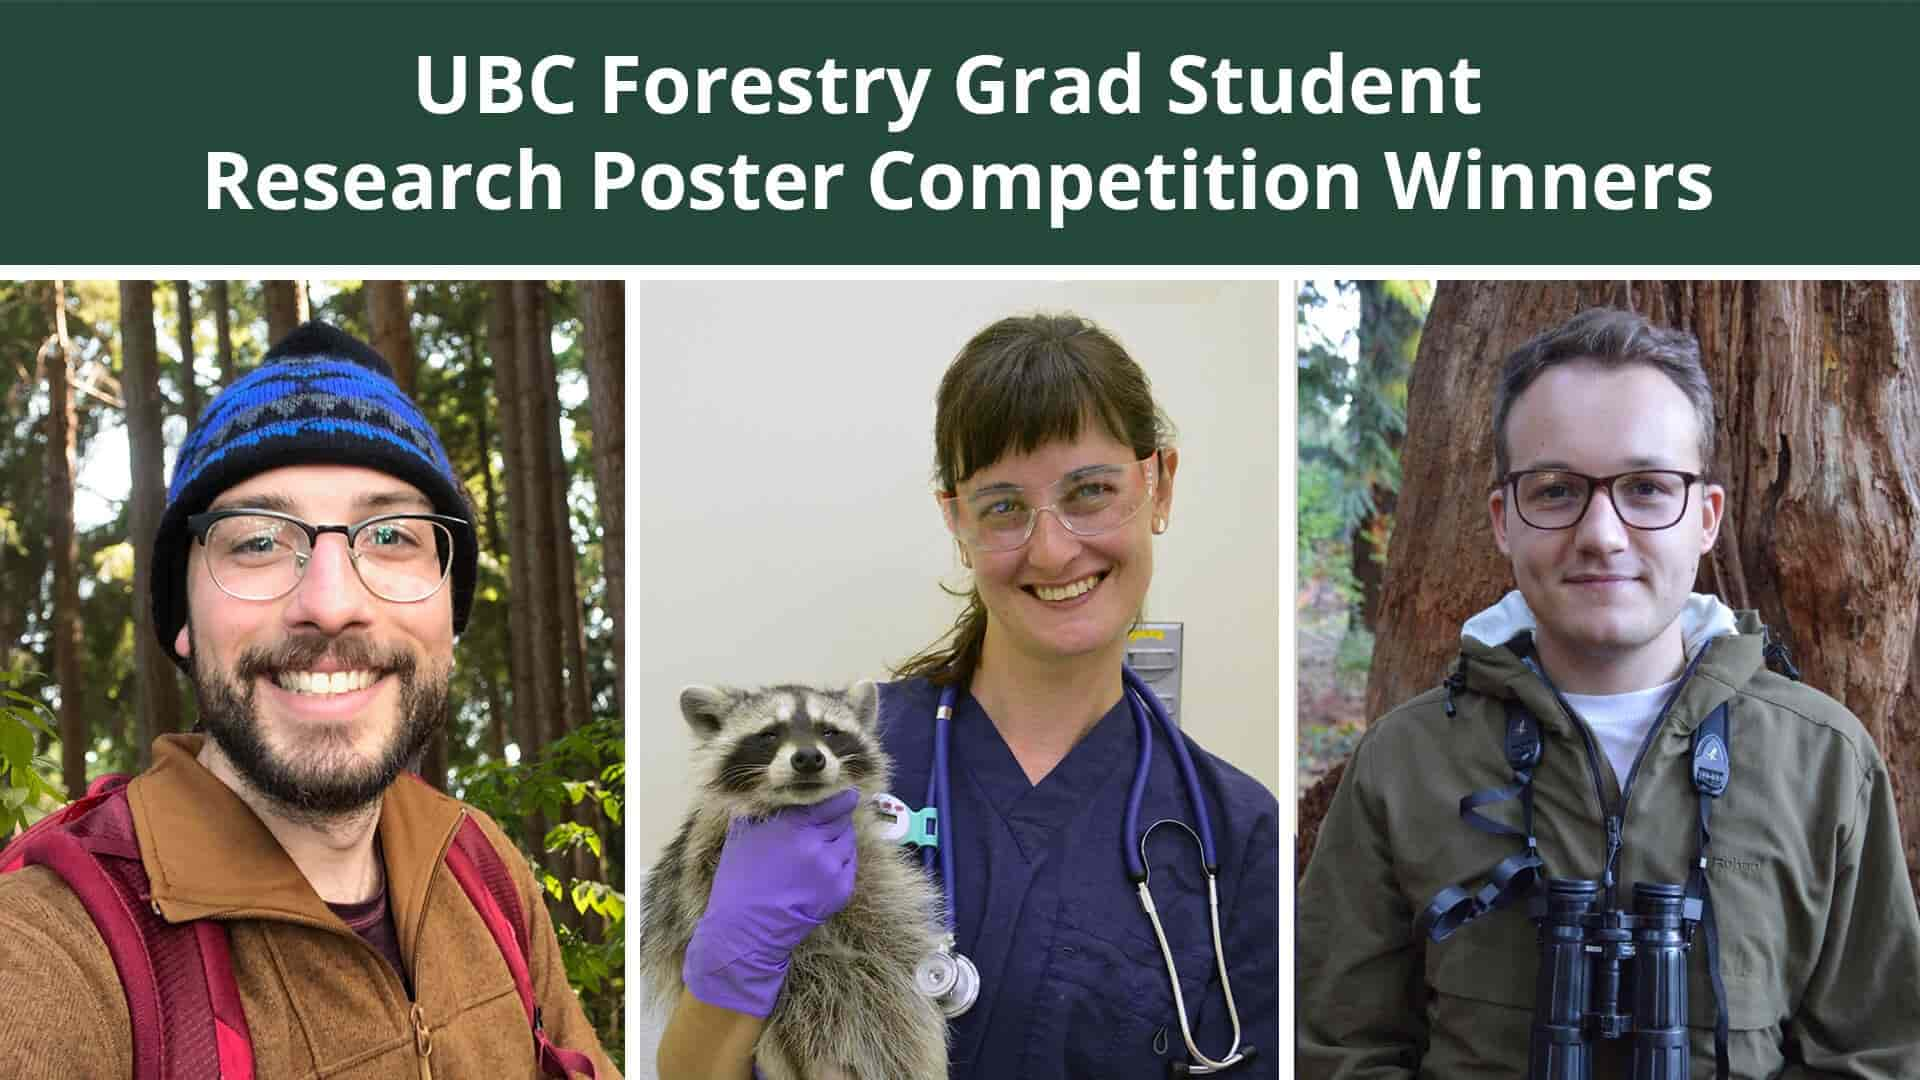 2020/21 Forestry Grad Student Research Poster Competition